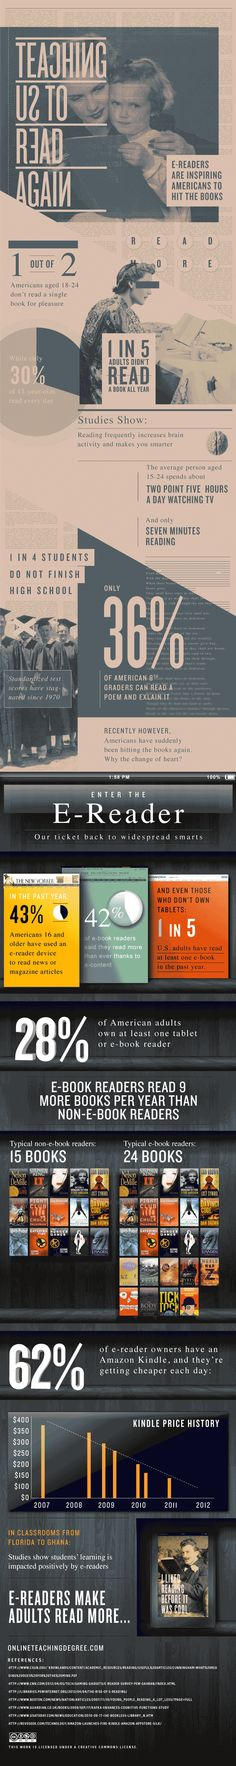 E-Readers:  Teaching Us to Read Again